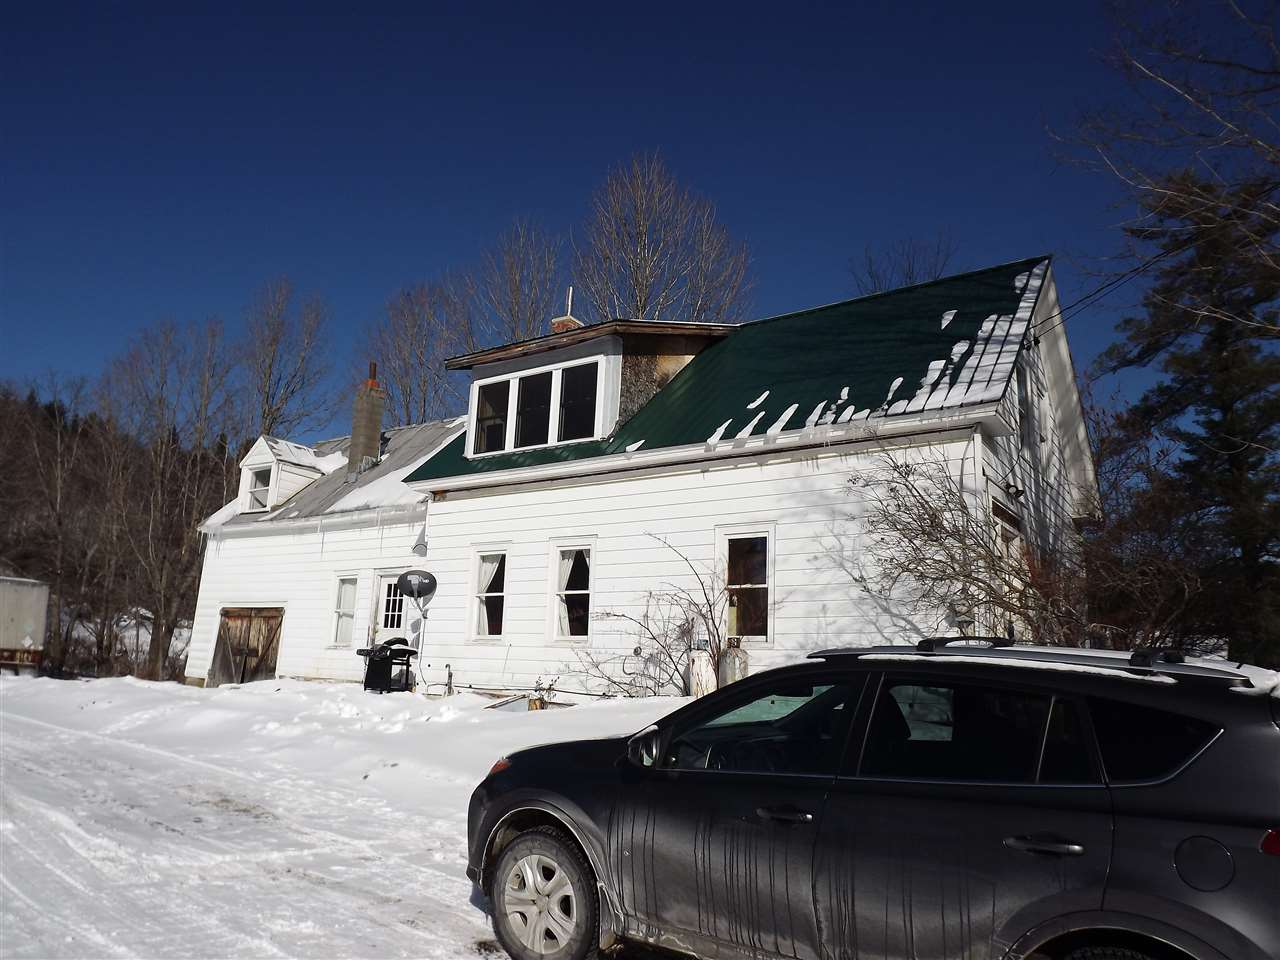 1951 Route 215 South, Cabot, VT 05647